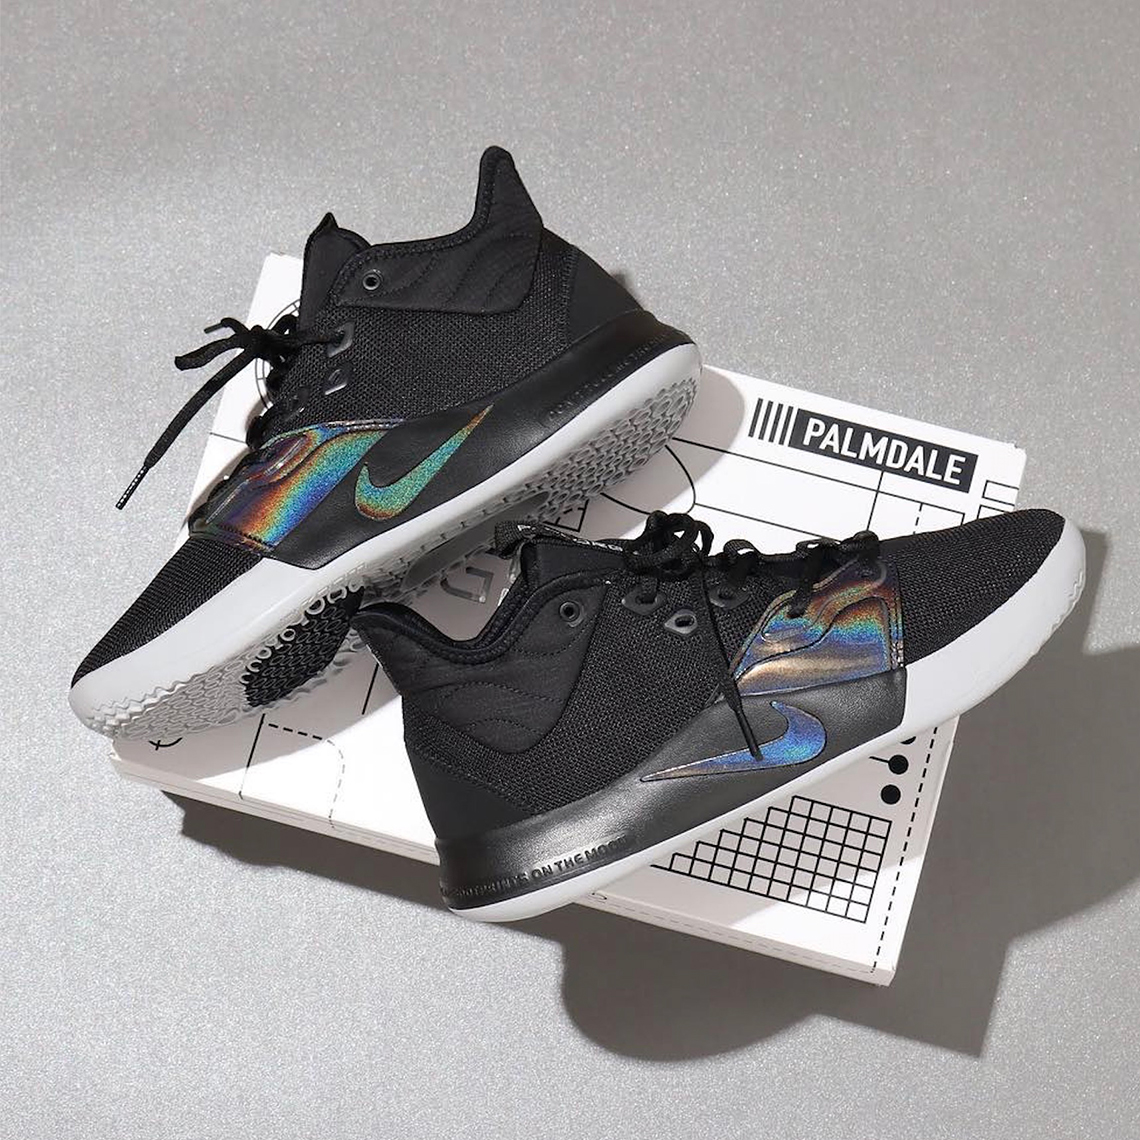 The Nike PG 3 in Black/Iridescent to See a Wider Release on May 24th